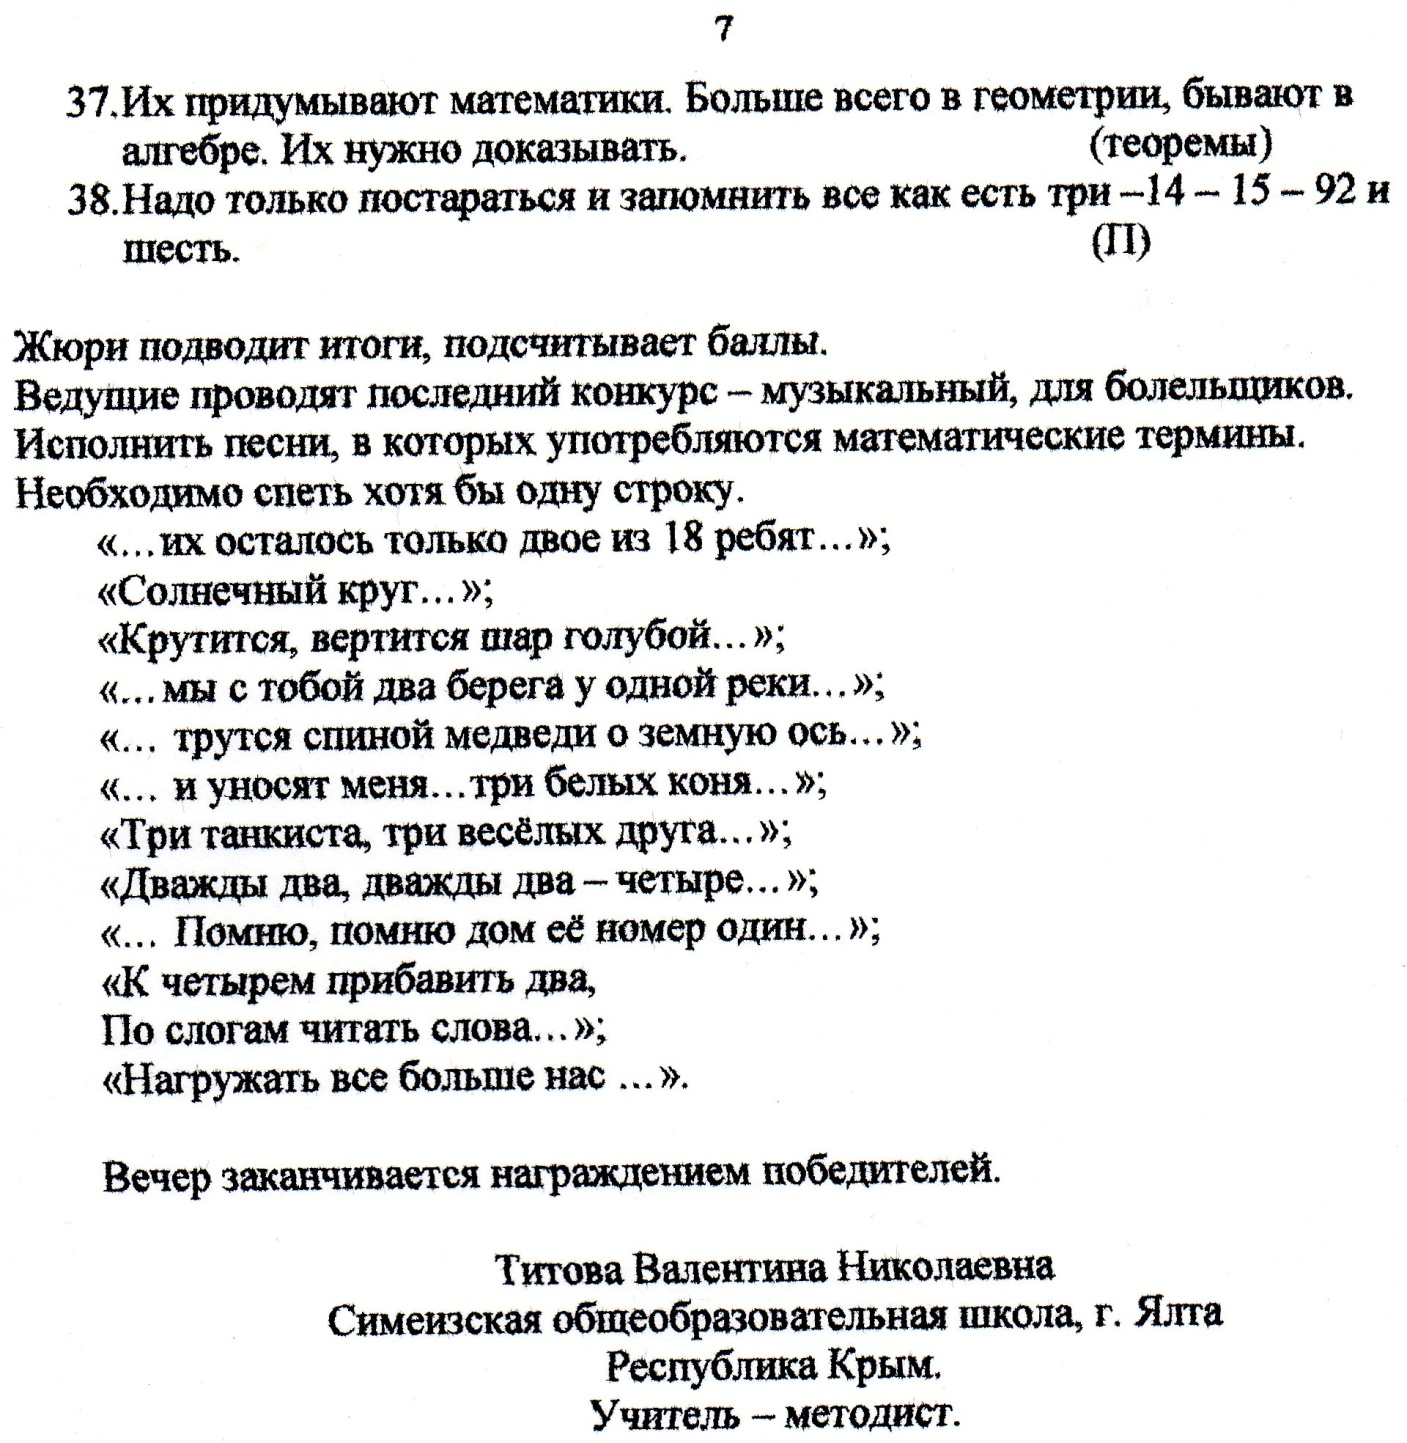 C:\Users\Валентина\Pictures\img178.jpg